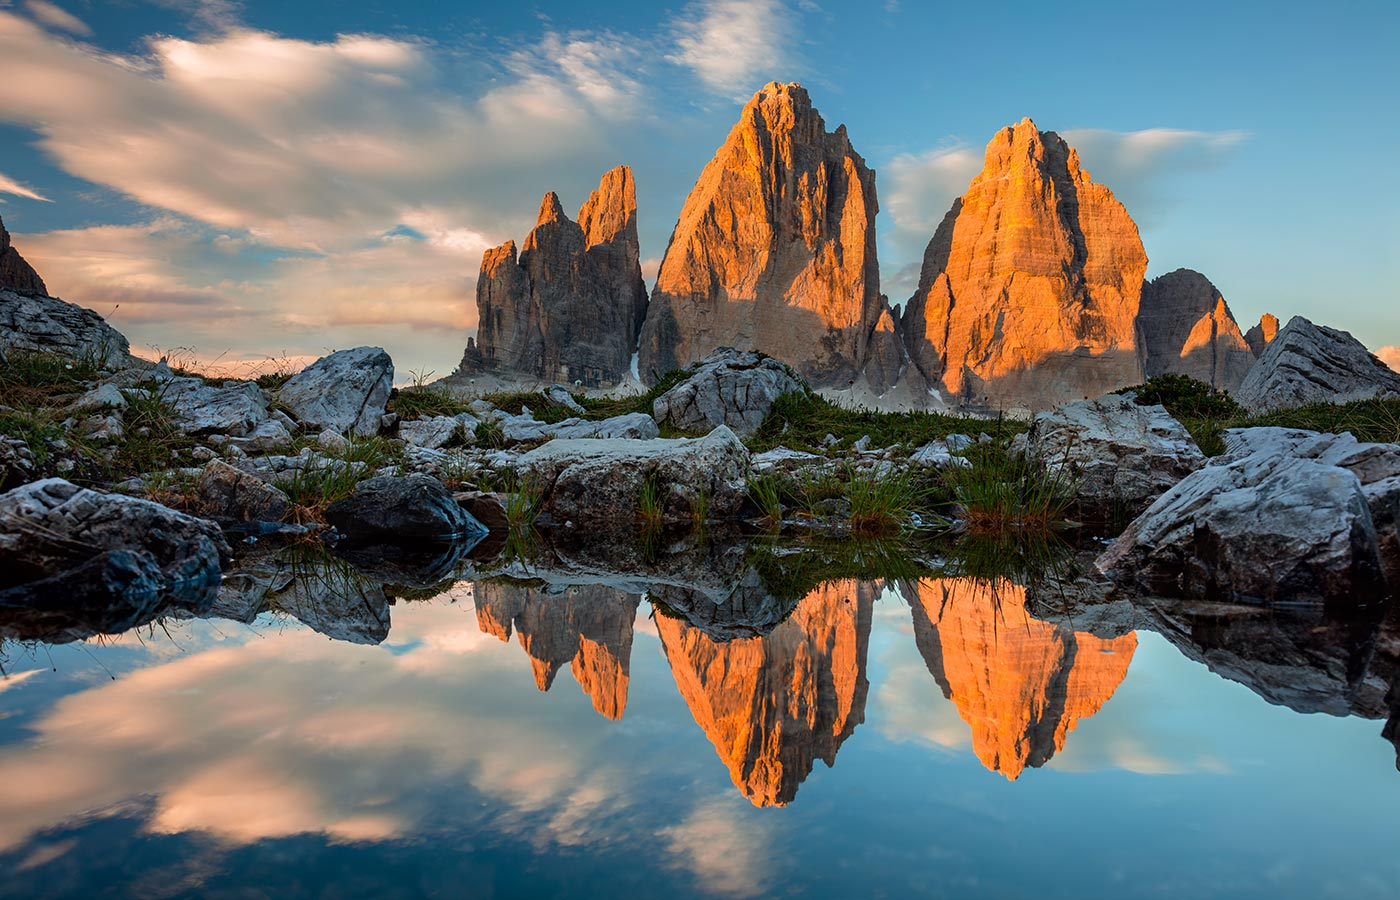 The three peaks of Lavaredo in the heart of the Dolomites